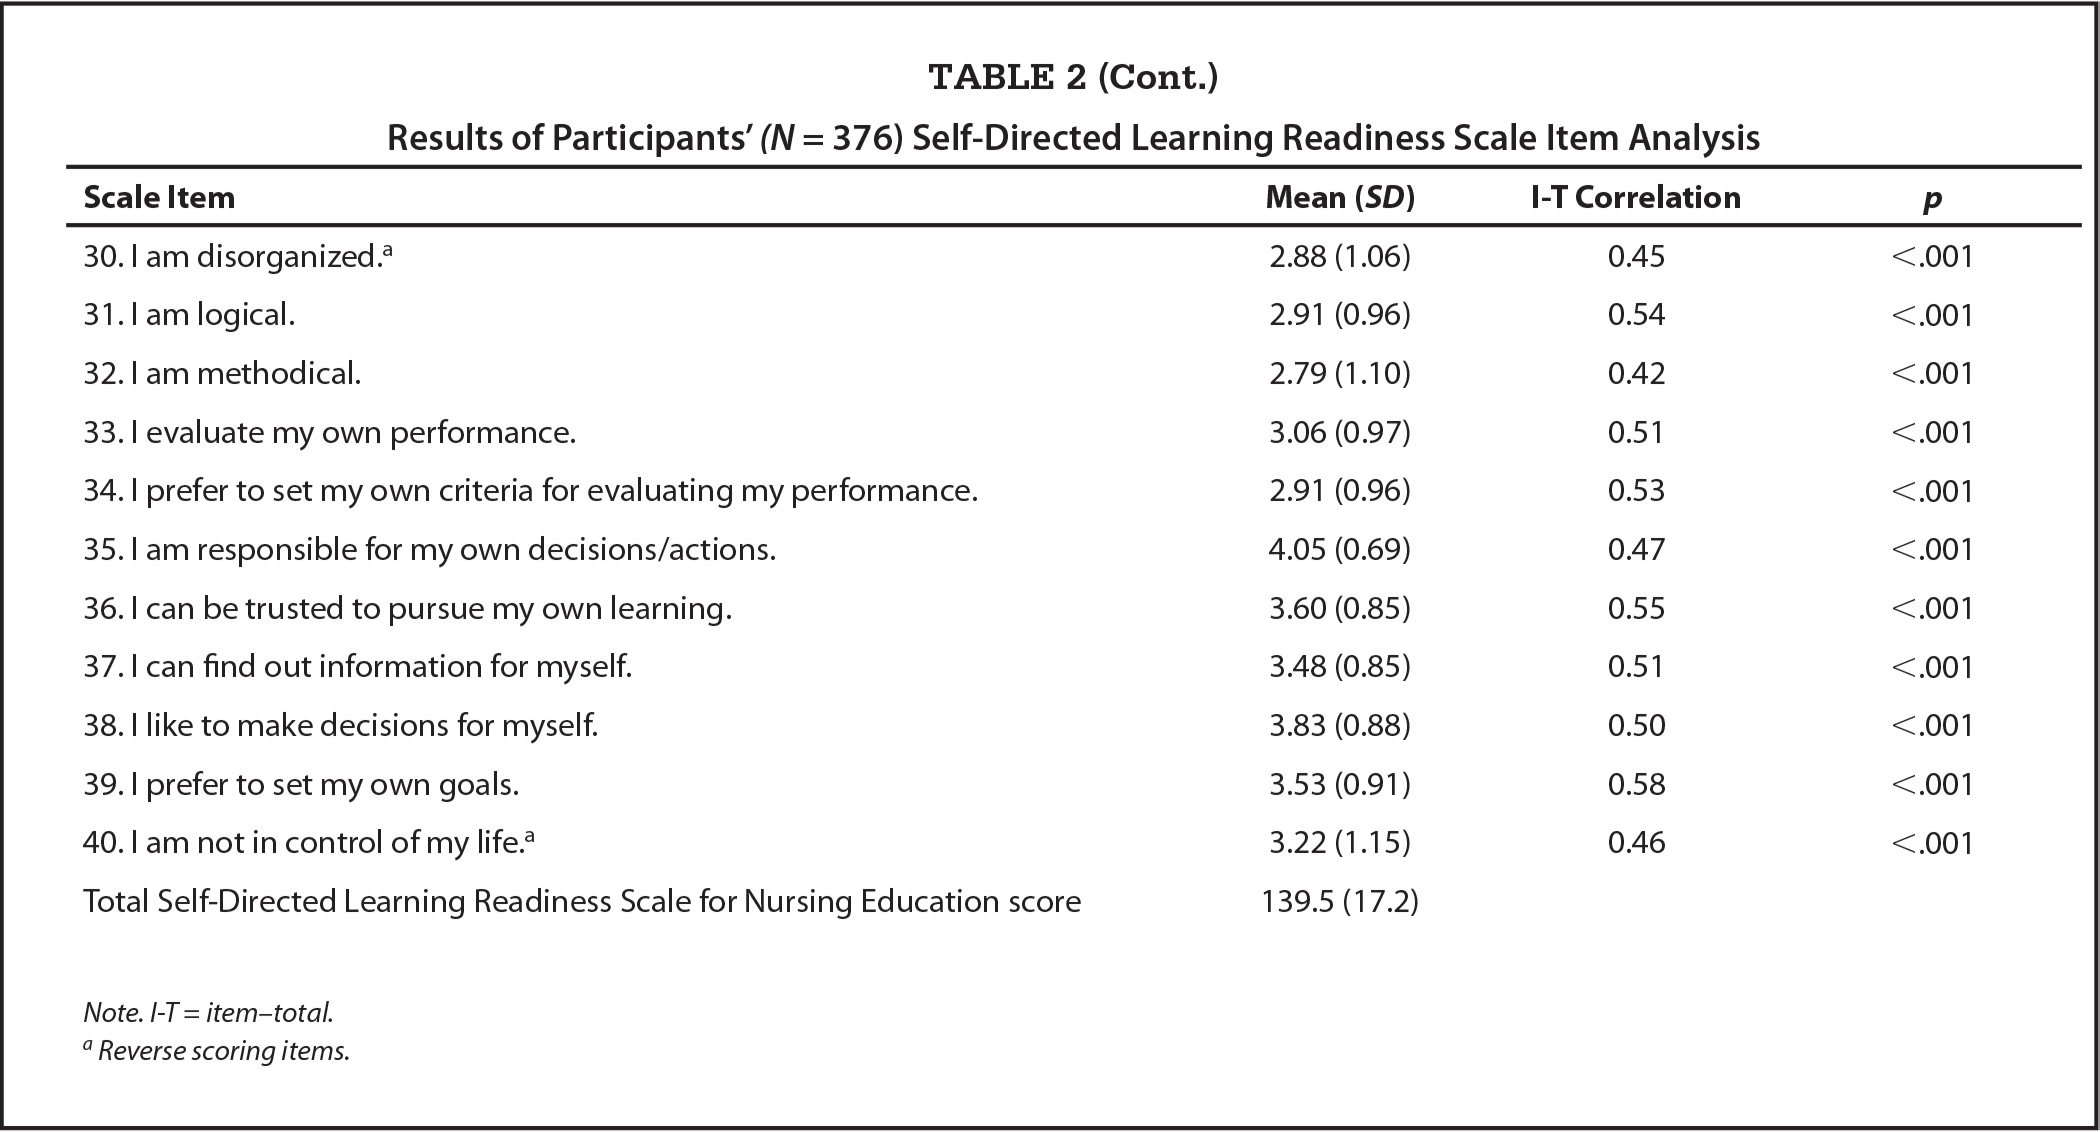 Results of Participants' (N = 376) Self-Directed Learning Readiness Scale Item Analysis